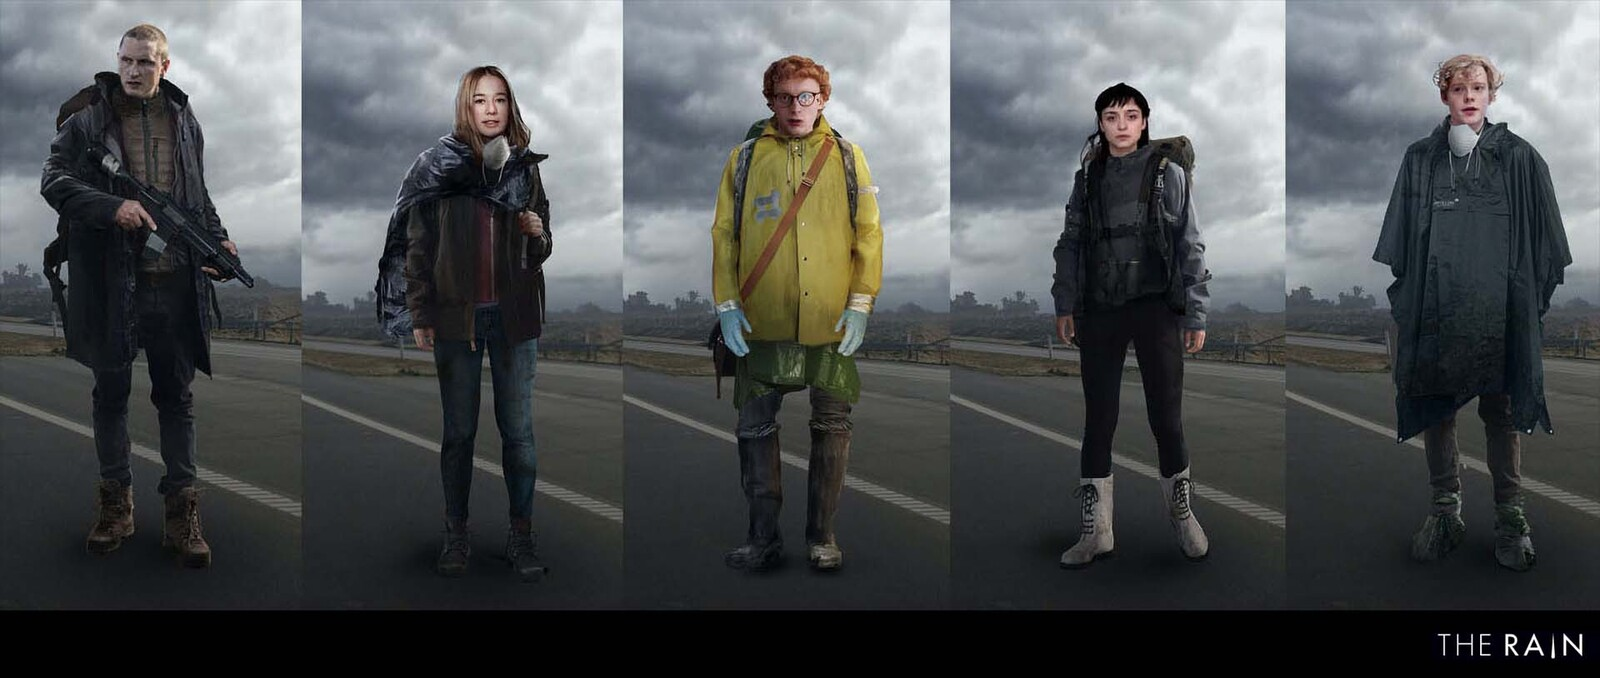 Character concept design for Netflix series